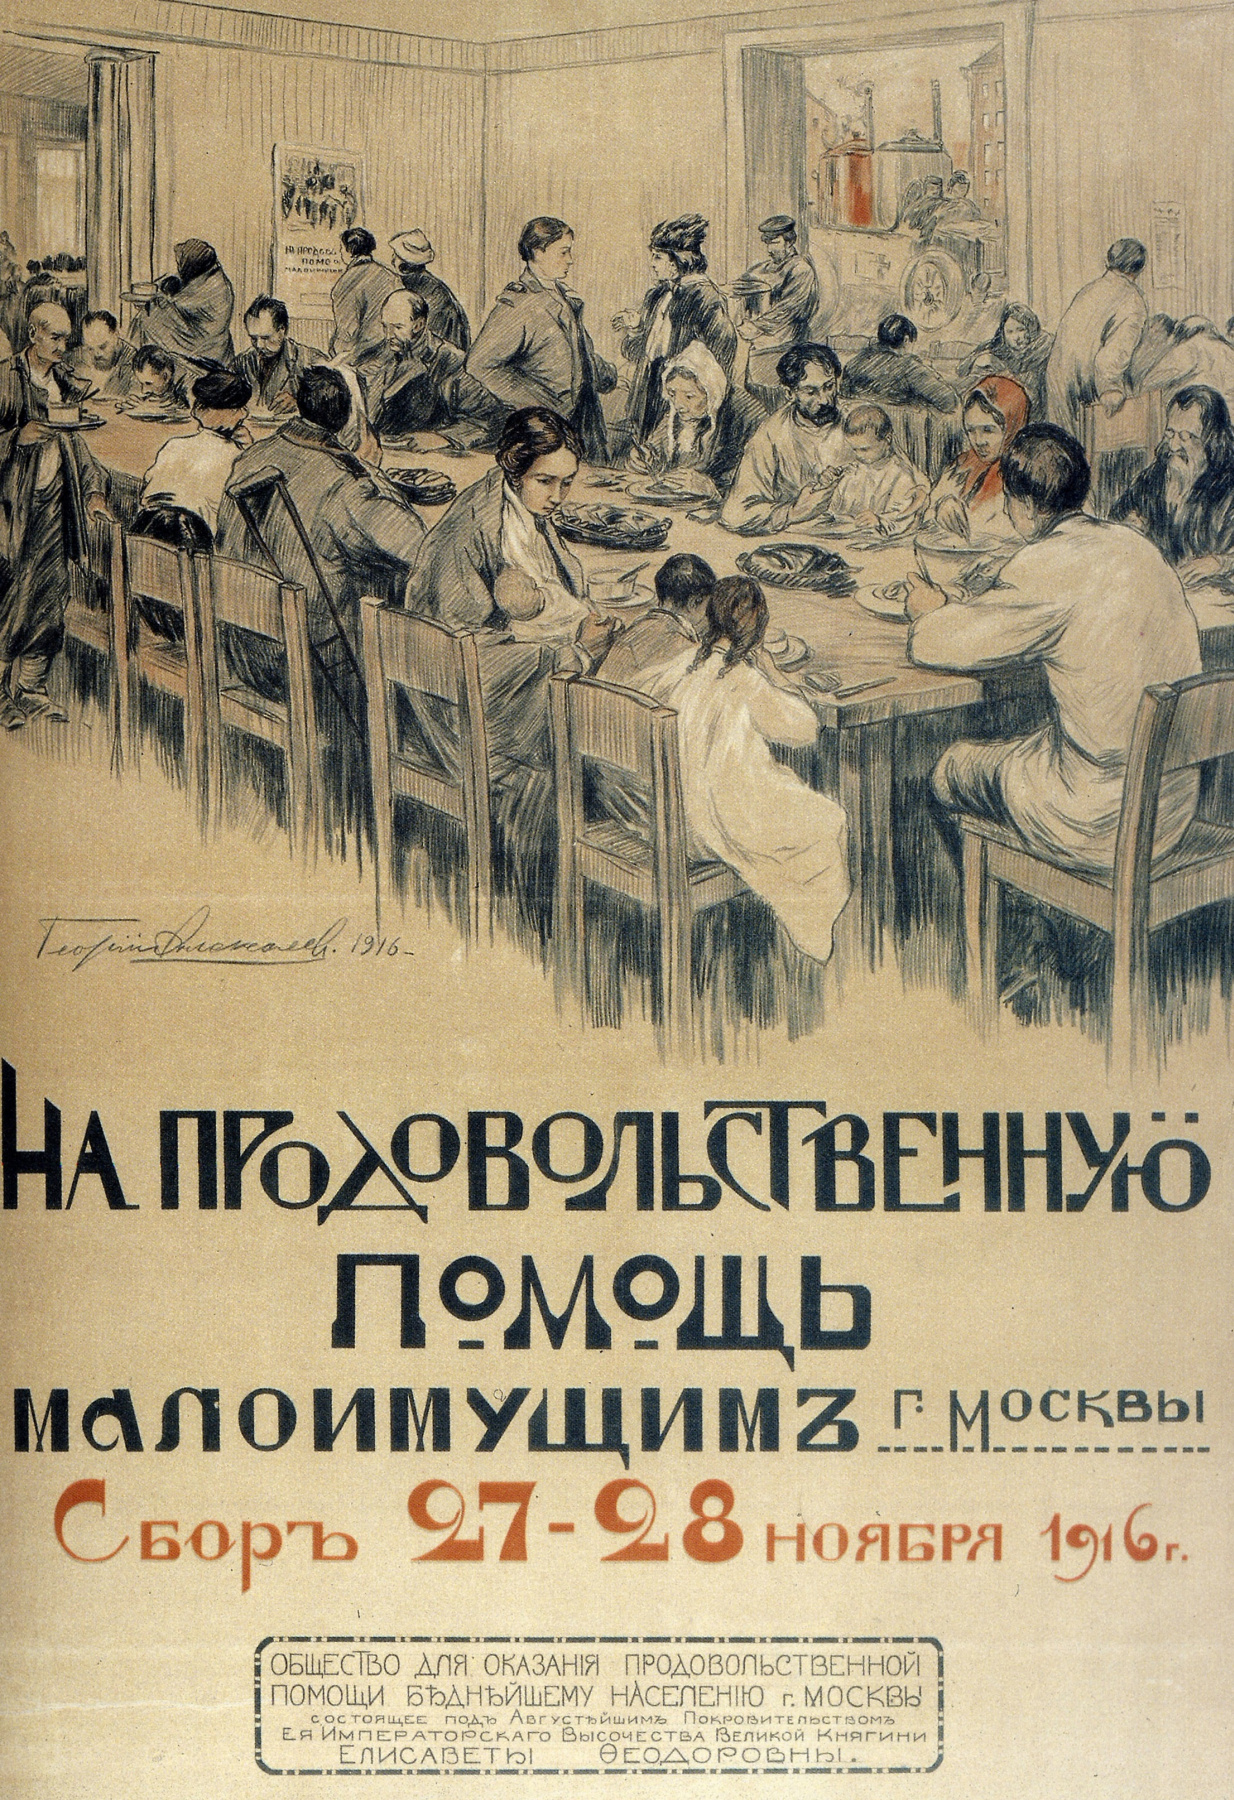 George Dmitrievich Alekseev. For food aid to needy in Moscow. Collection of 27—28 November 1916